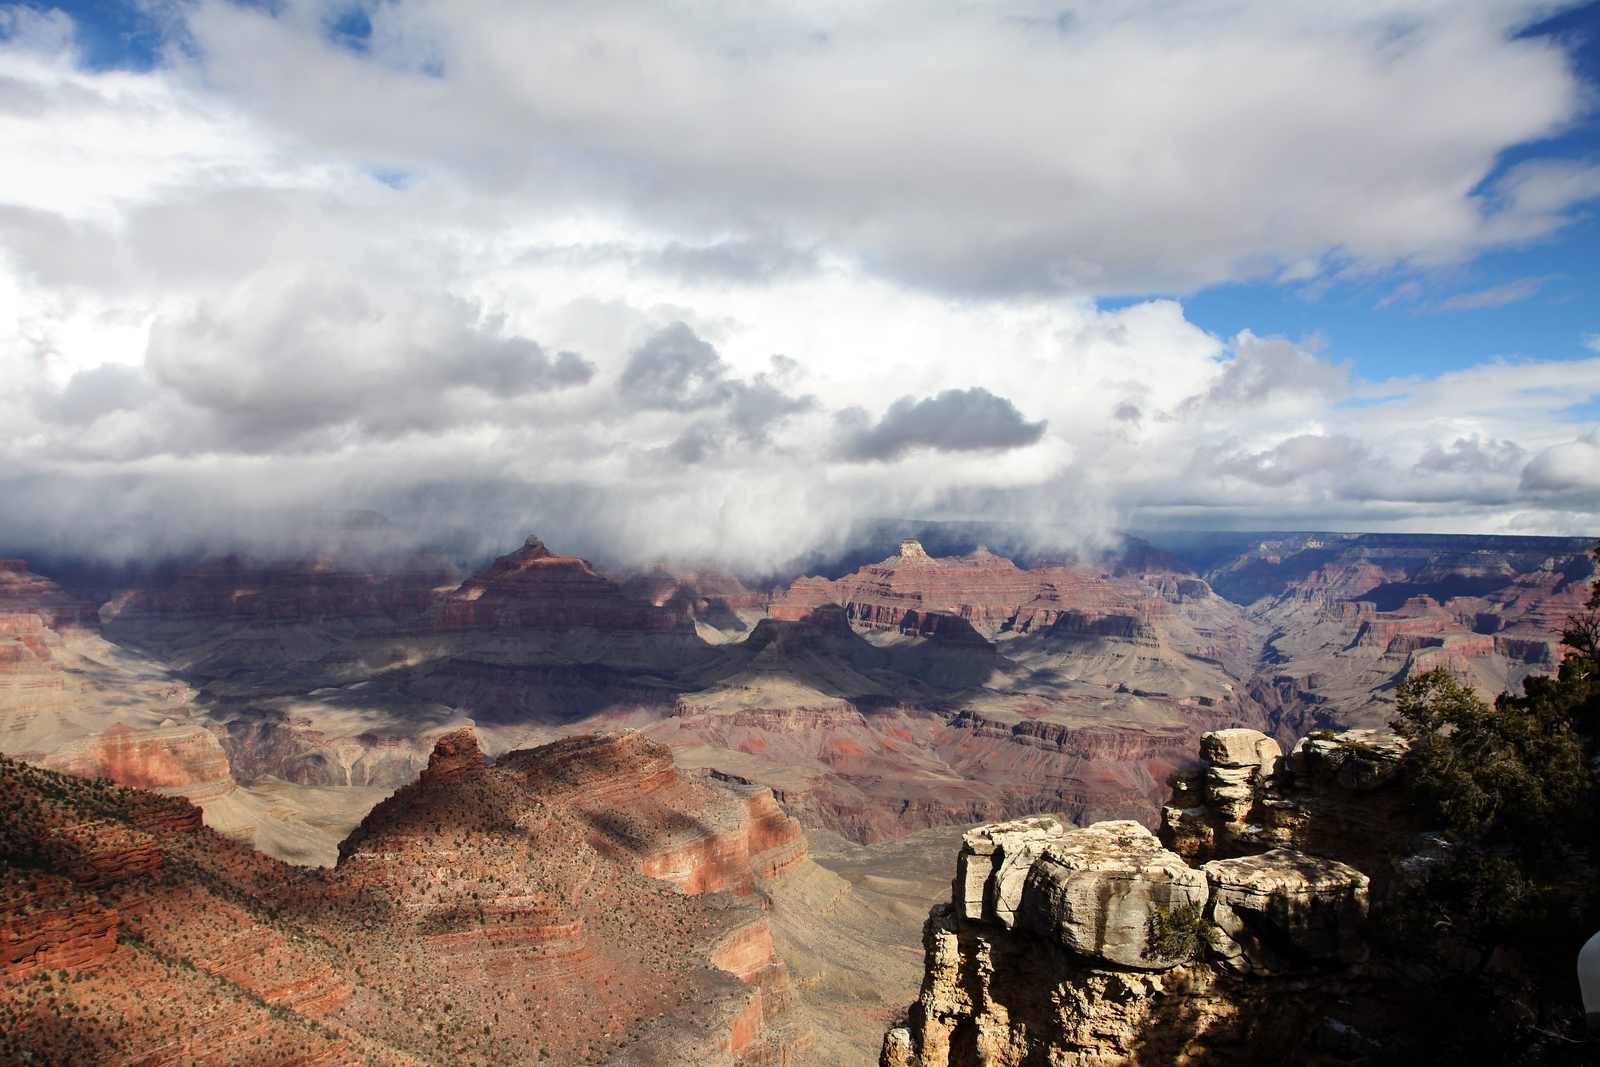 South Rim, Grand Canyon, Arizona 2014.